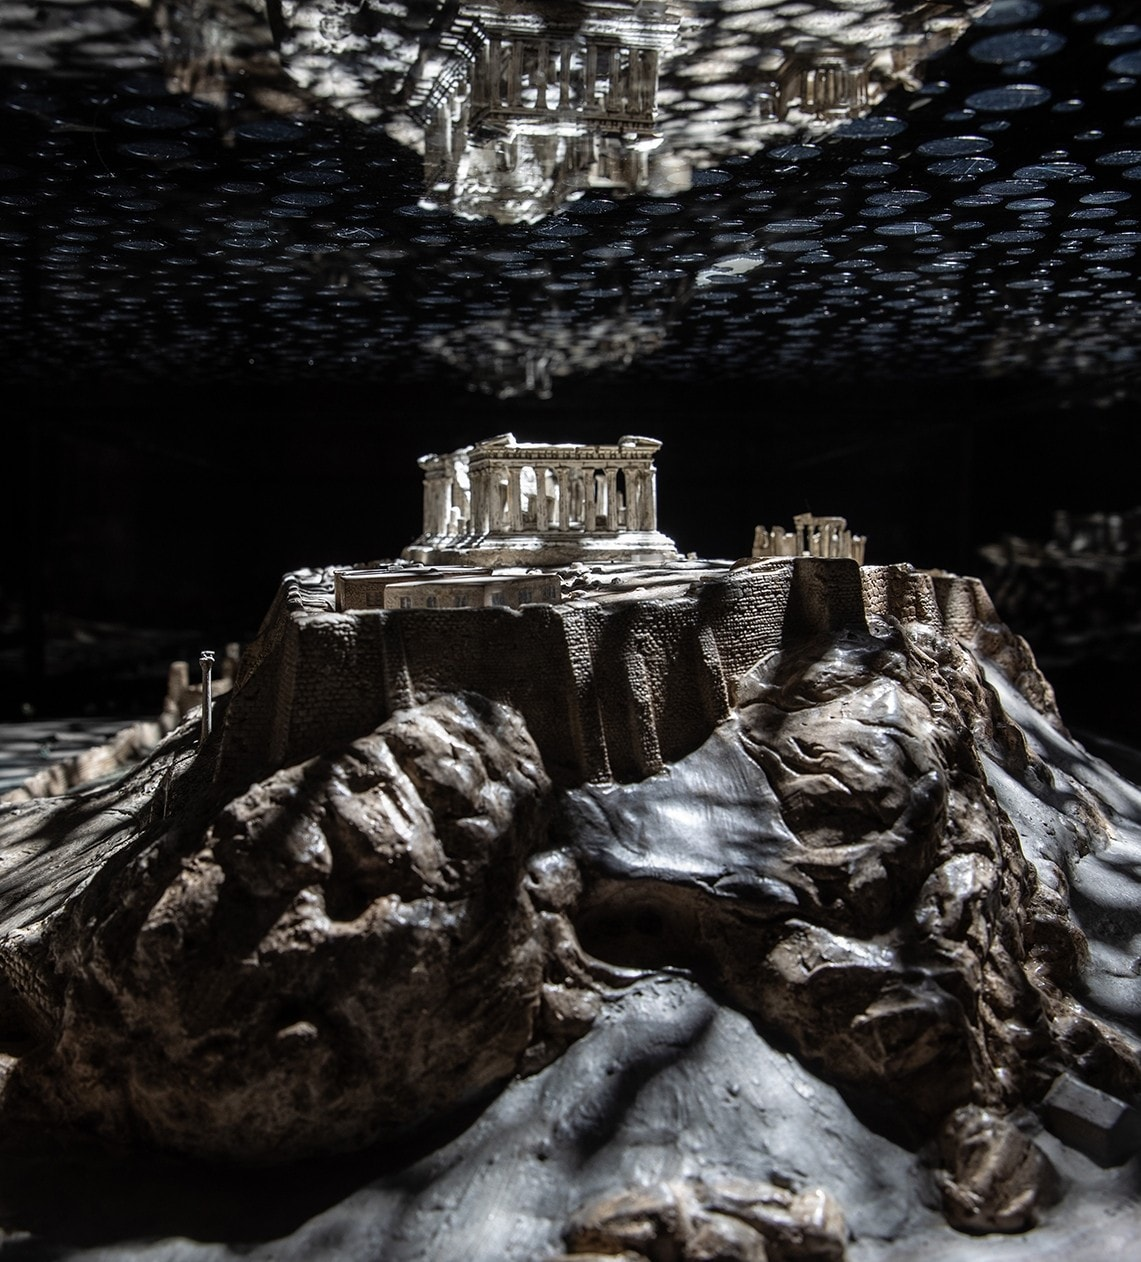 Model of the Acropolis of Athens bathed in darkness and speckled light